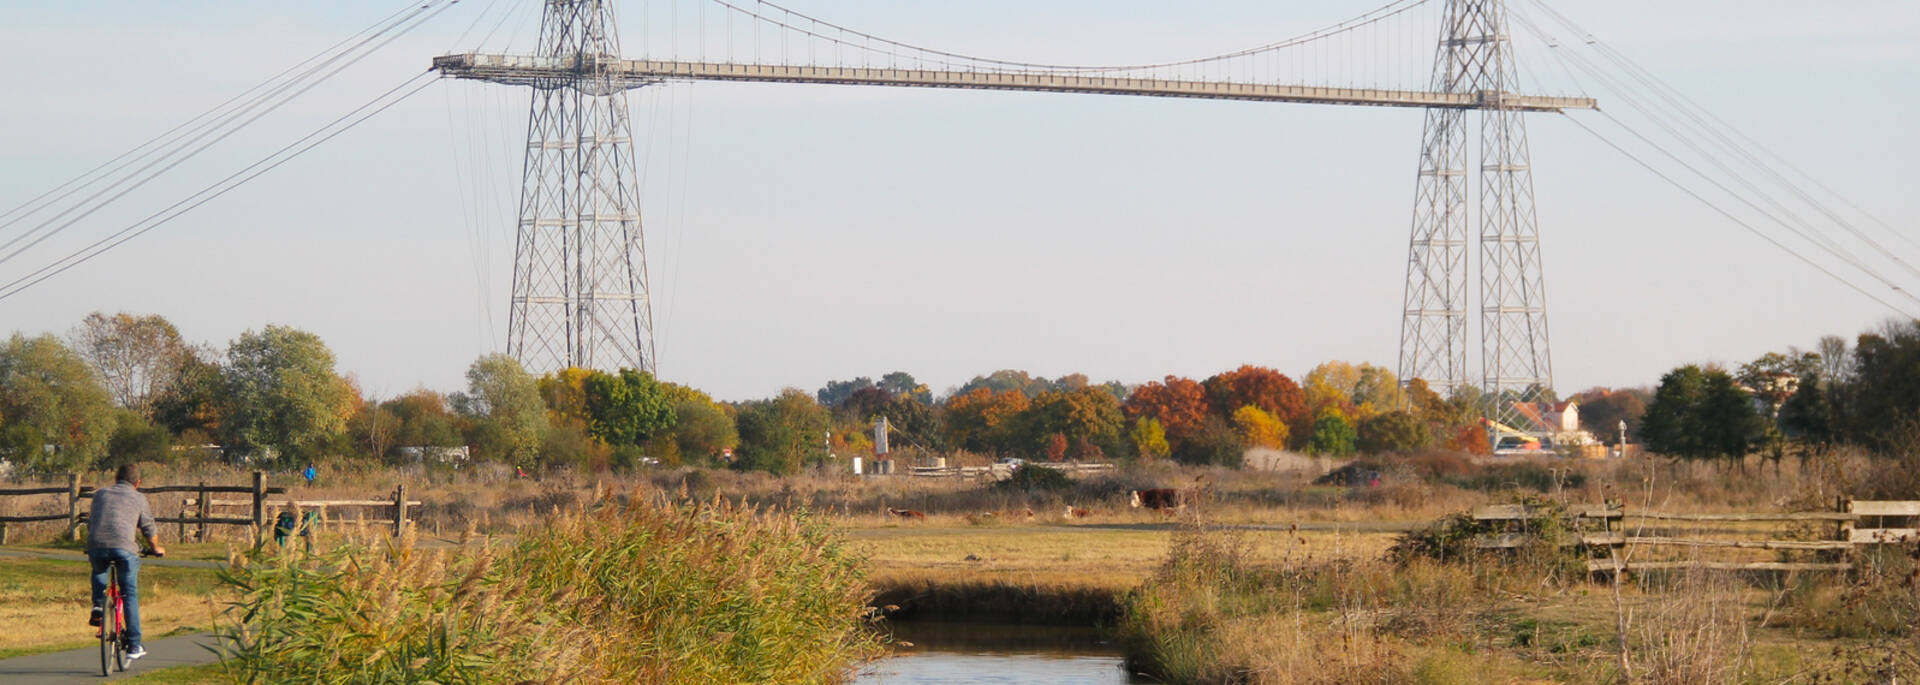 Walks in the marshes next to the Charente river and the Transporter Bridge - © Office de tourisme Rochefort Océan